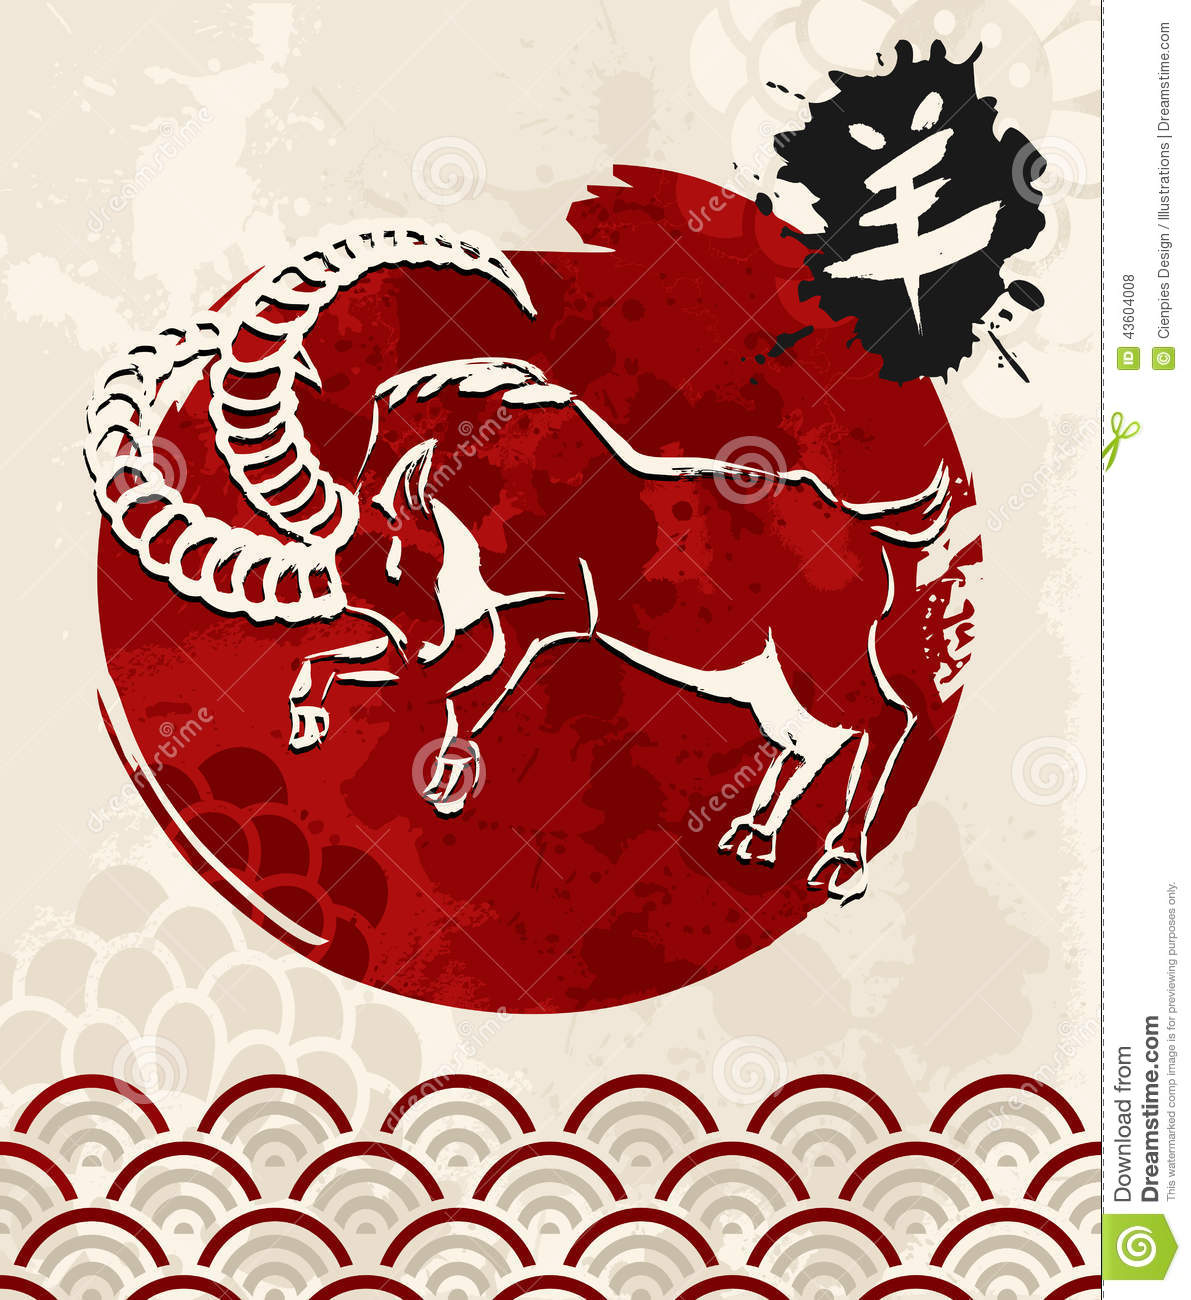 2015 Chinese New Year Of The Goat Stock Vector - Image: 43604008